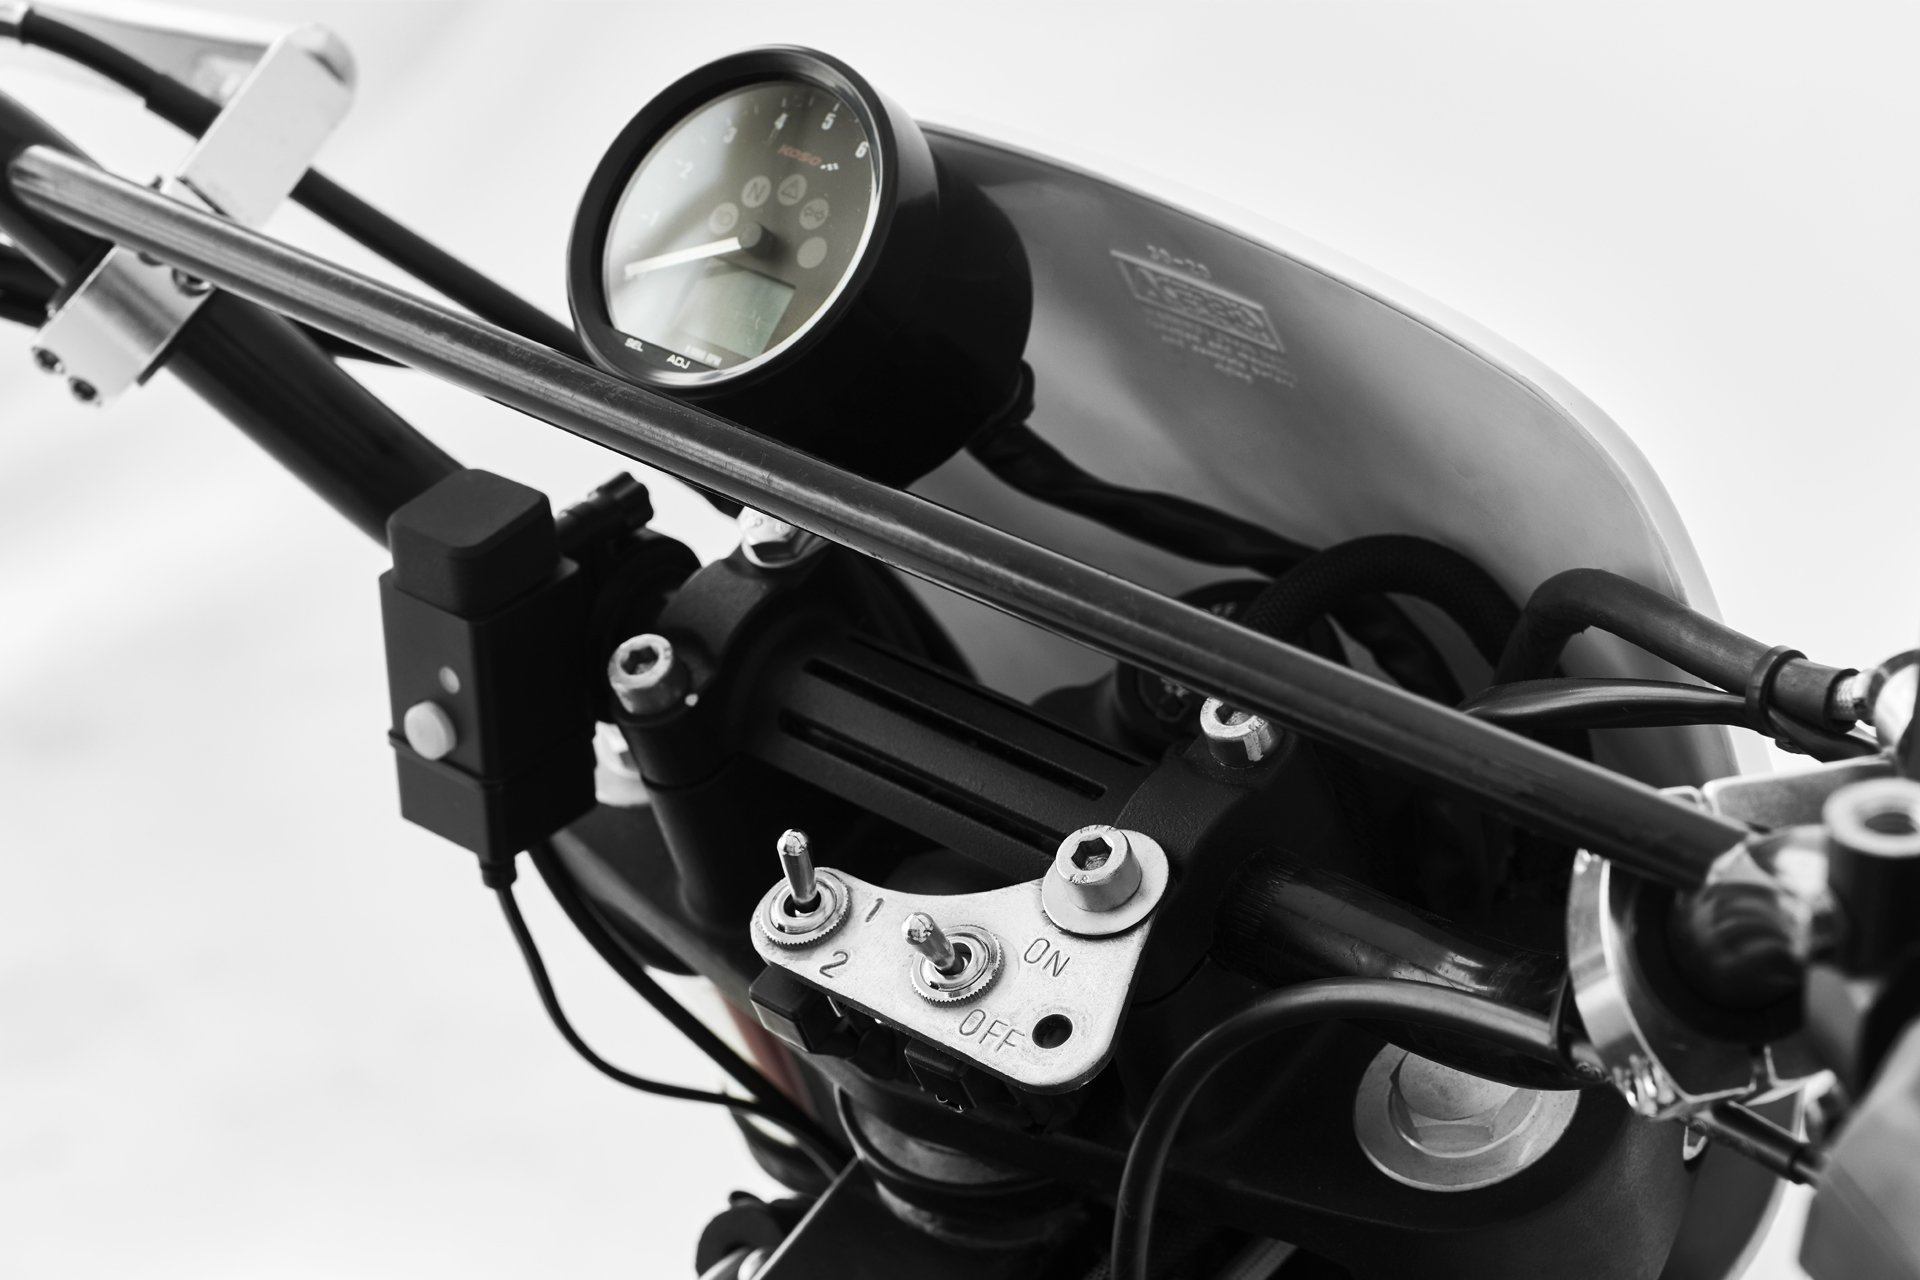 Royal Enfield Fuel Modified Cafe Racer Dm 5